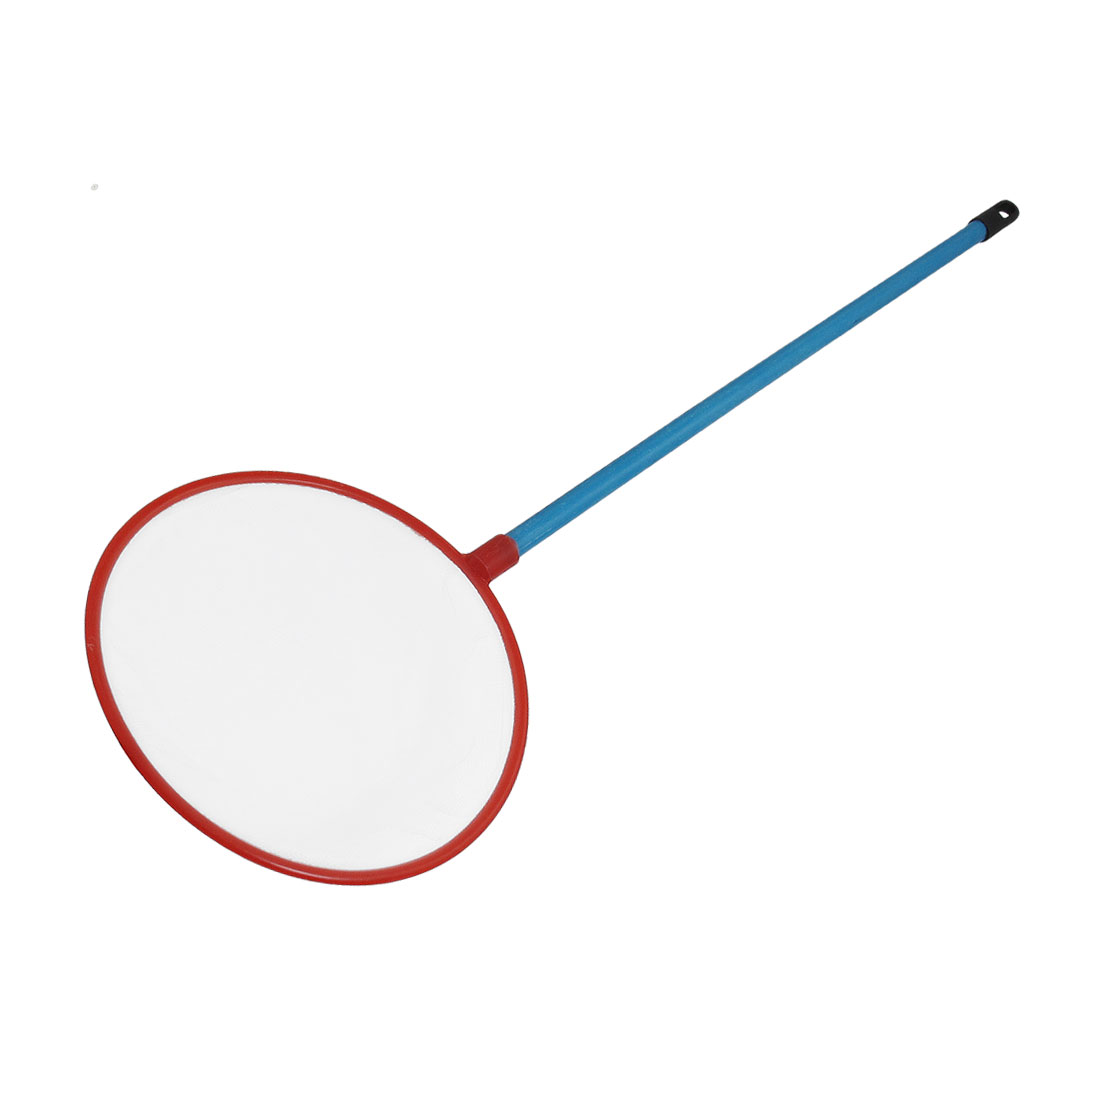 Red Round Mouth Frame Blue Plastic Handle Tank Fish Landing Net